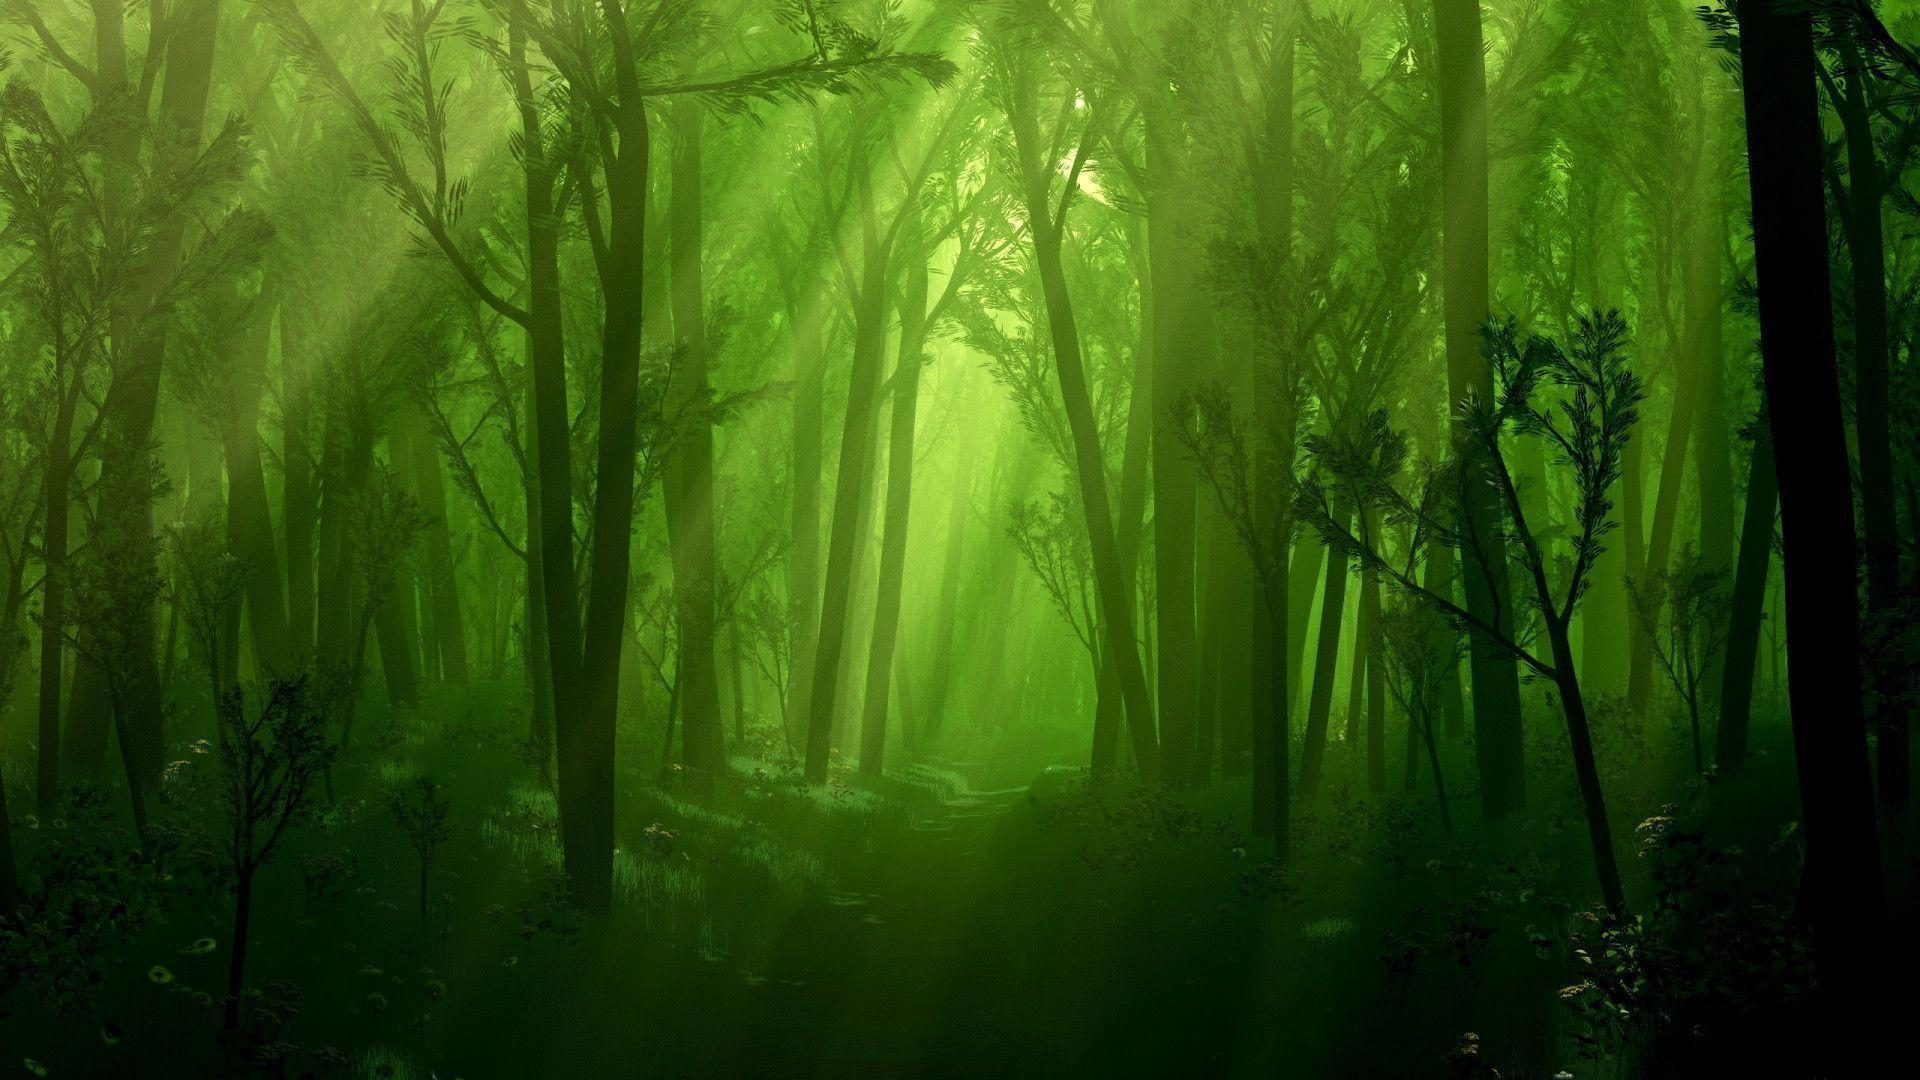 Enchanted Forest wallpaper - 893268